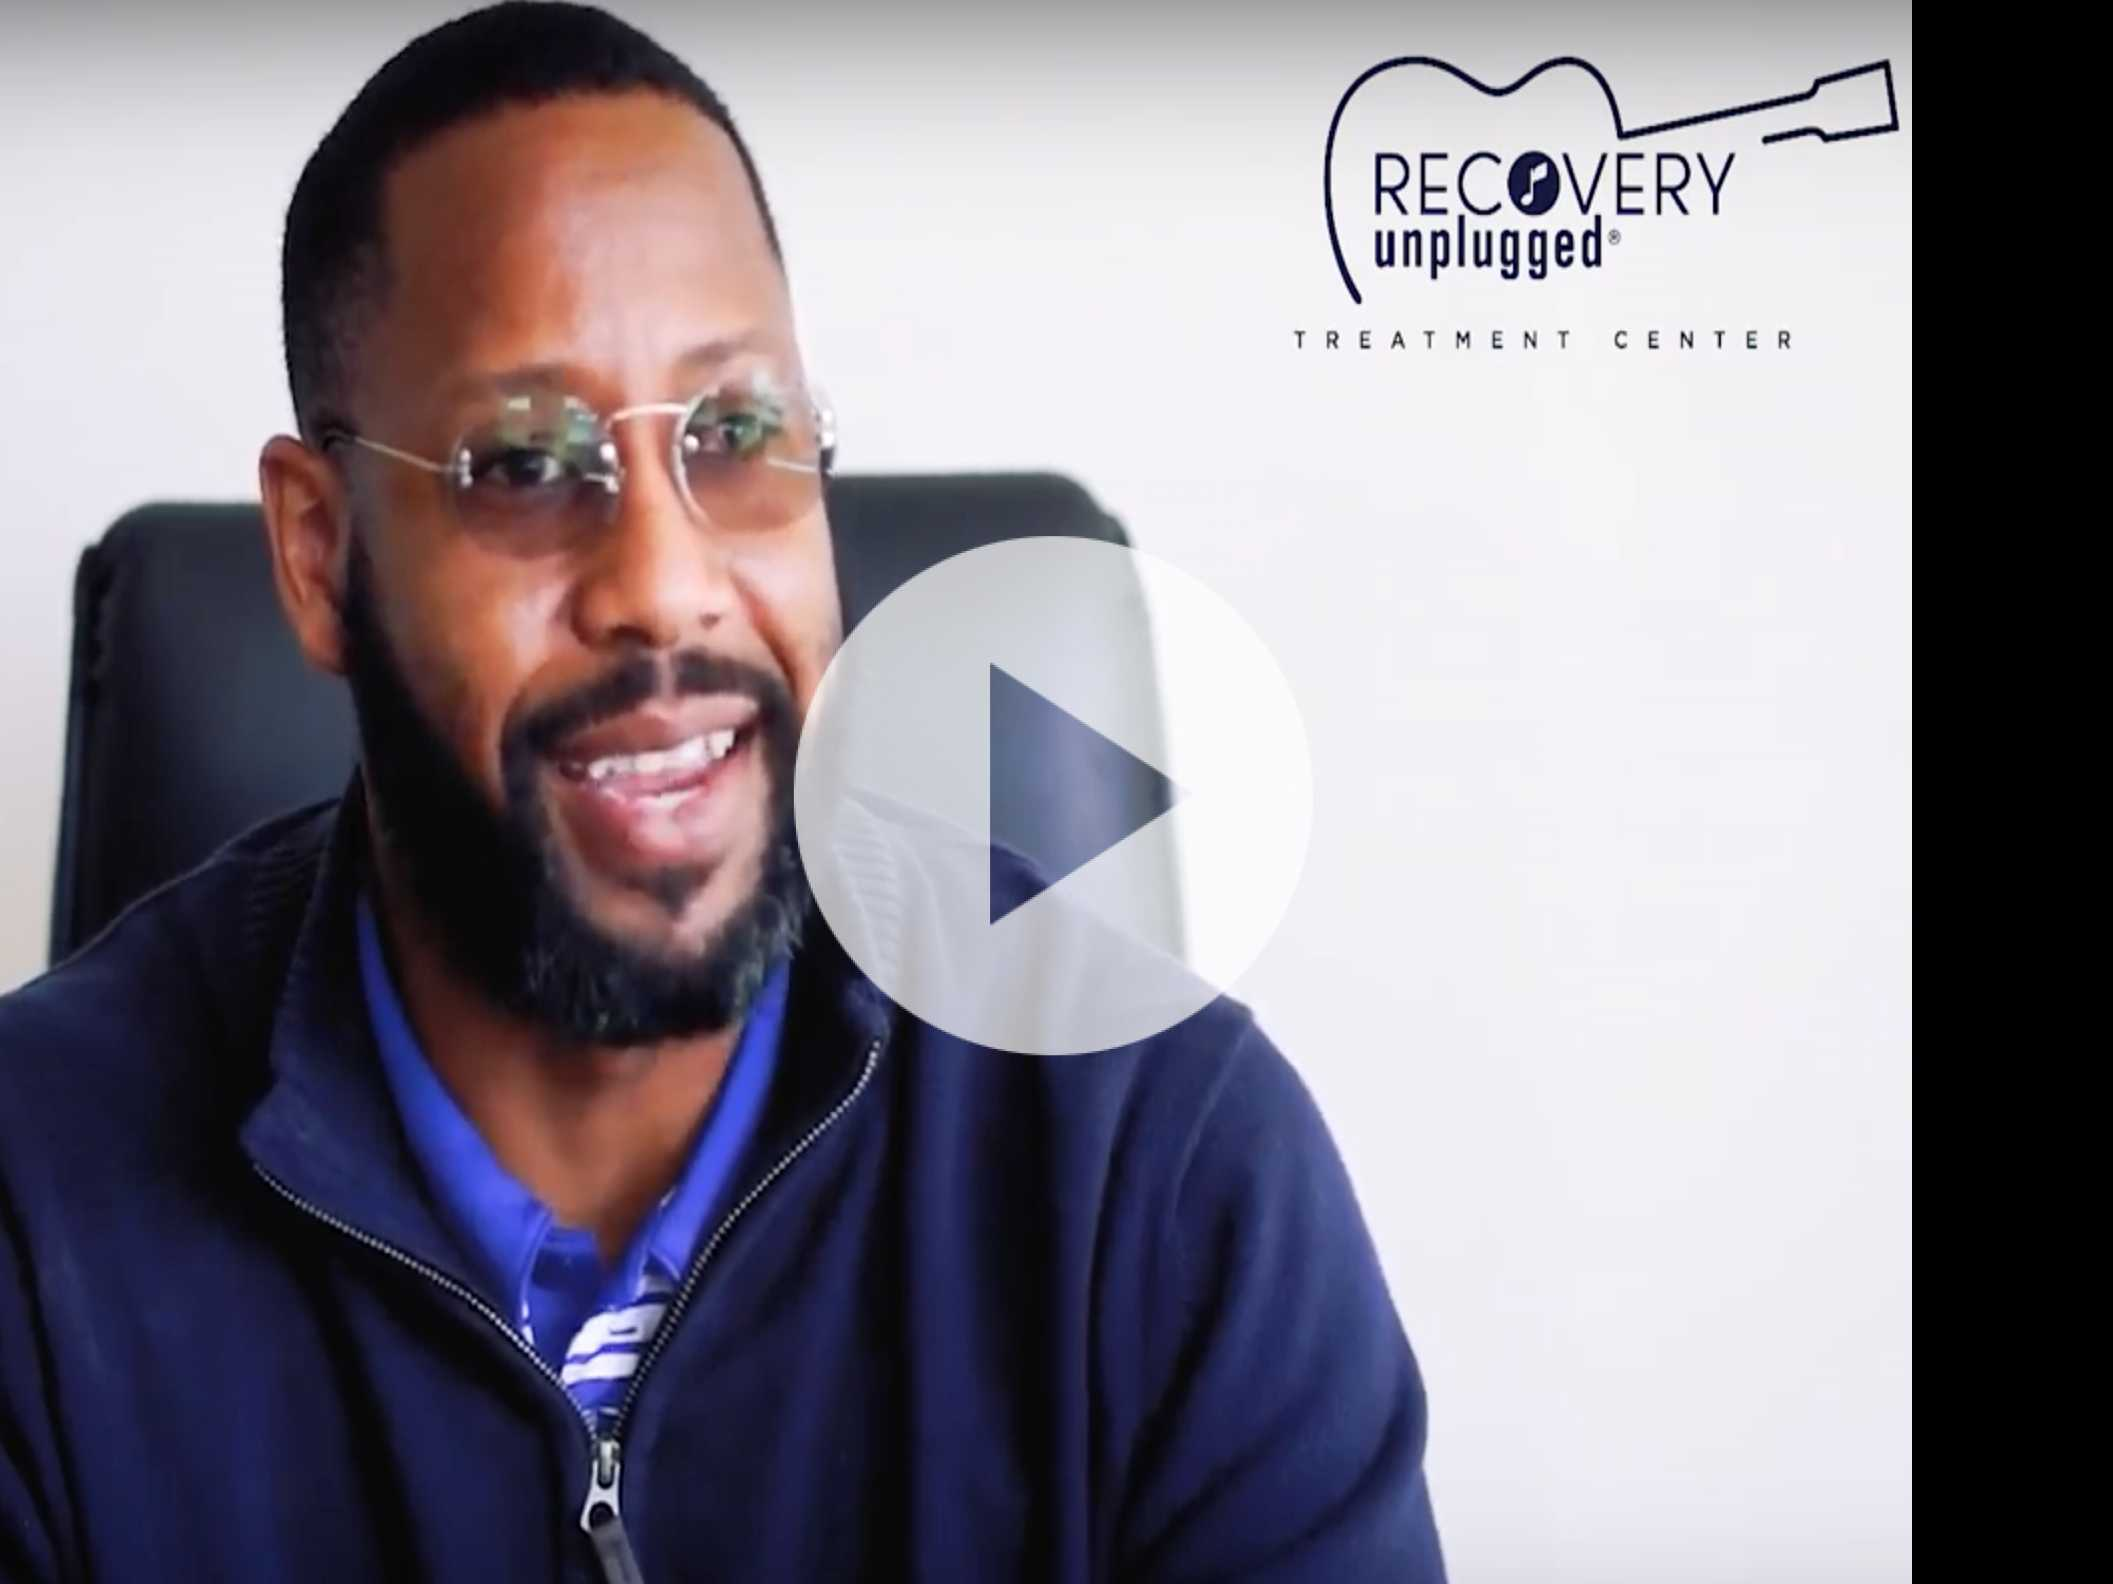 Recovery Unplugged: Behind the Treatment